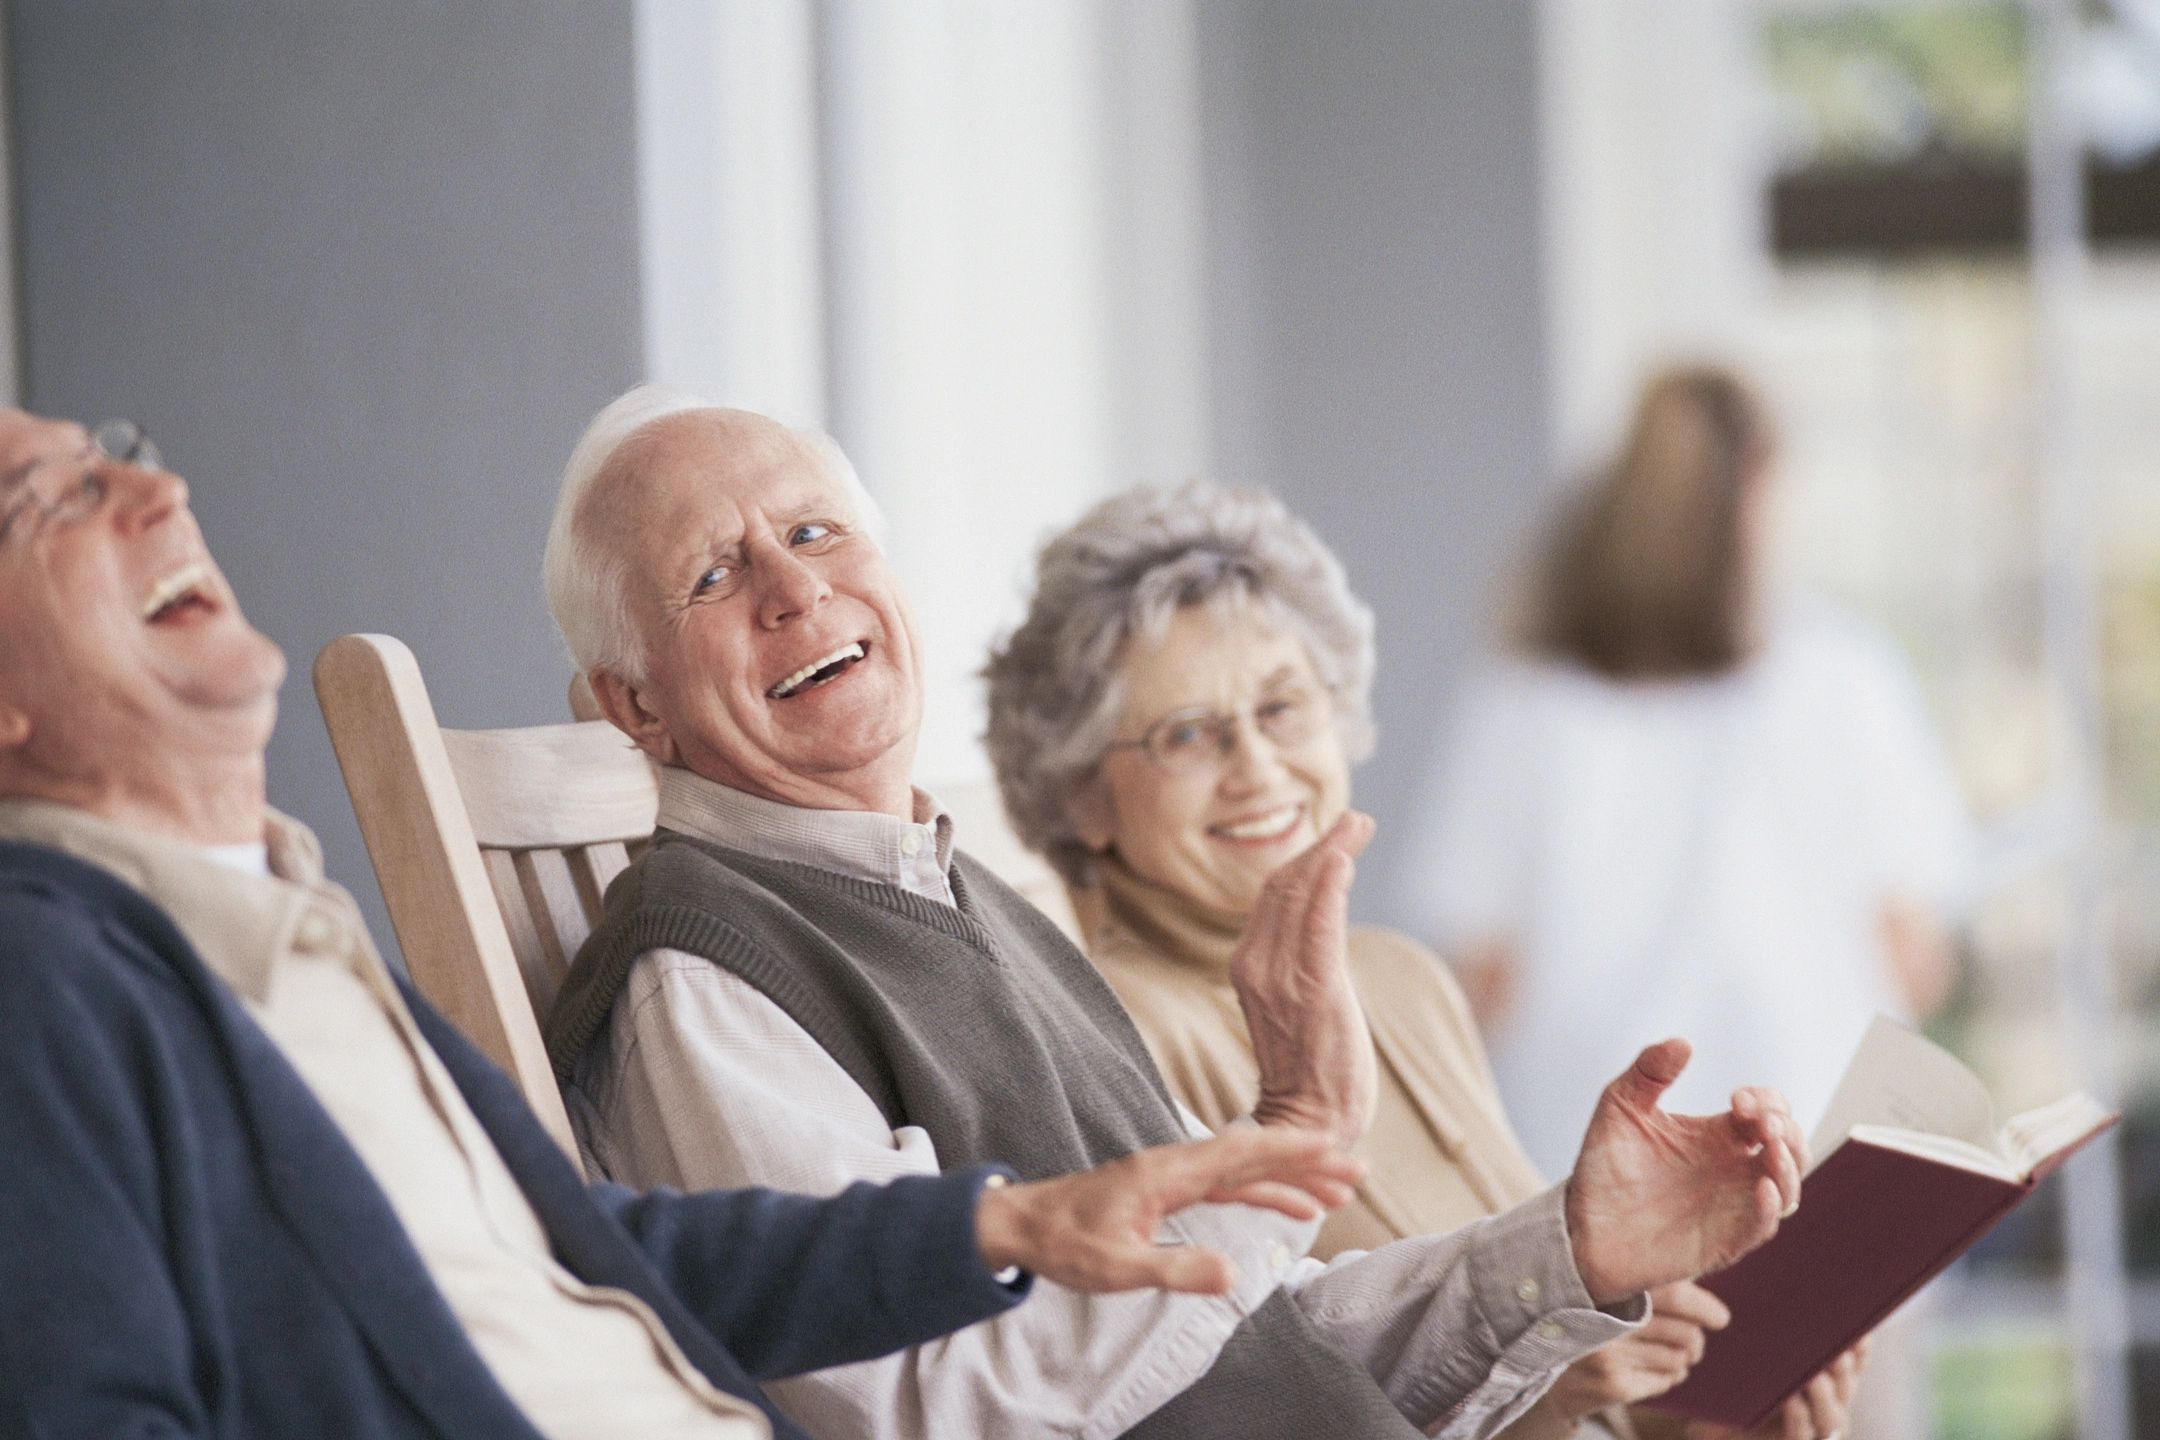 Study Shows Older Adults with Hearing Loss at Higher Risk for Depression